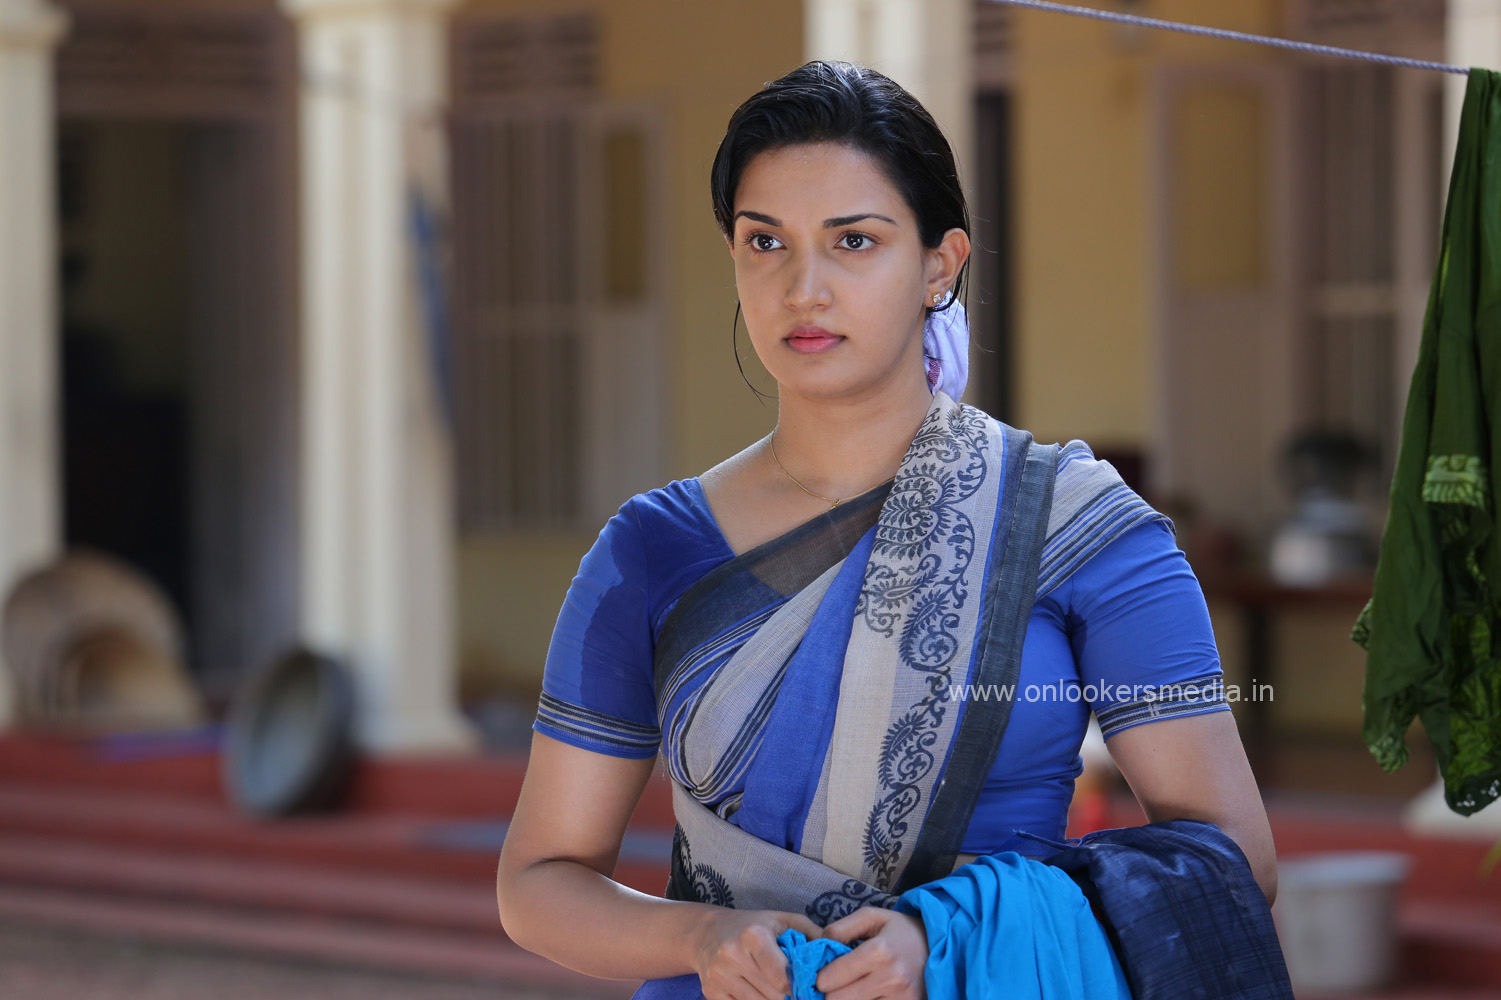 Honey Rose In Sir CP Malayalam Movie Stills-Images-Photos-Onlookers Media (1)